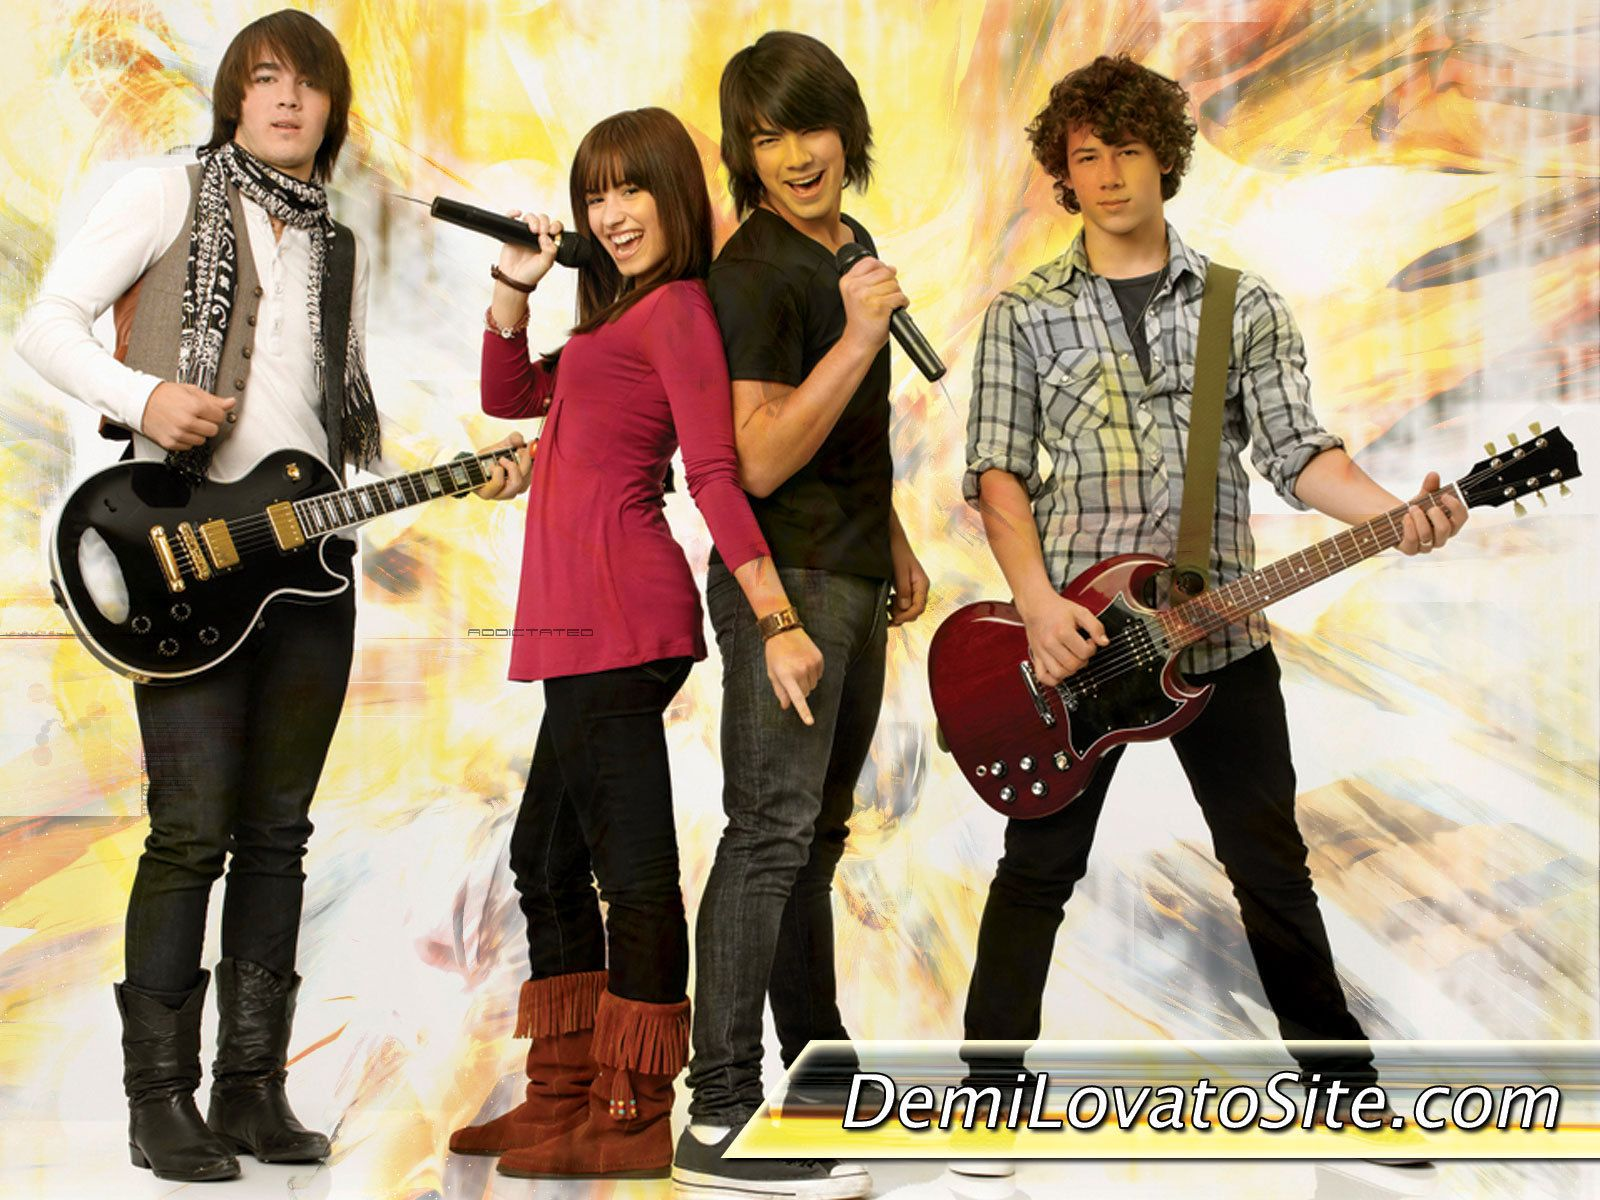 Demi Lovato and Jonas Brothers images demi lovato and jonas ...